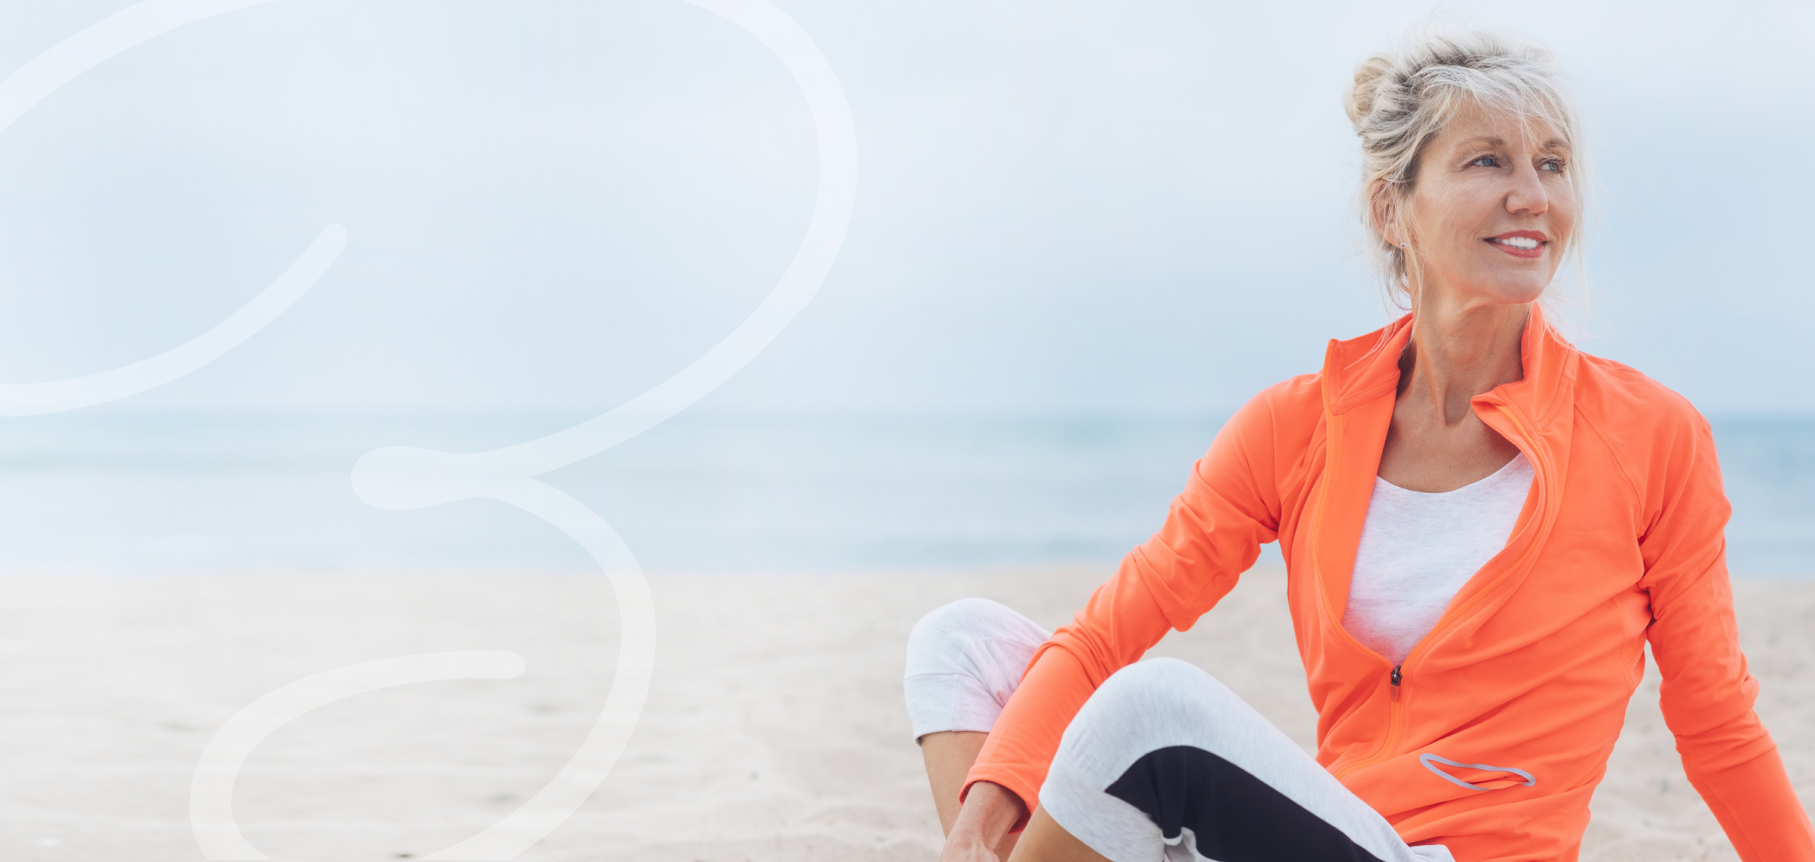 Attractive middle-age woman happy to be doing yoga at the beach.